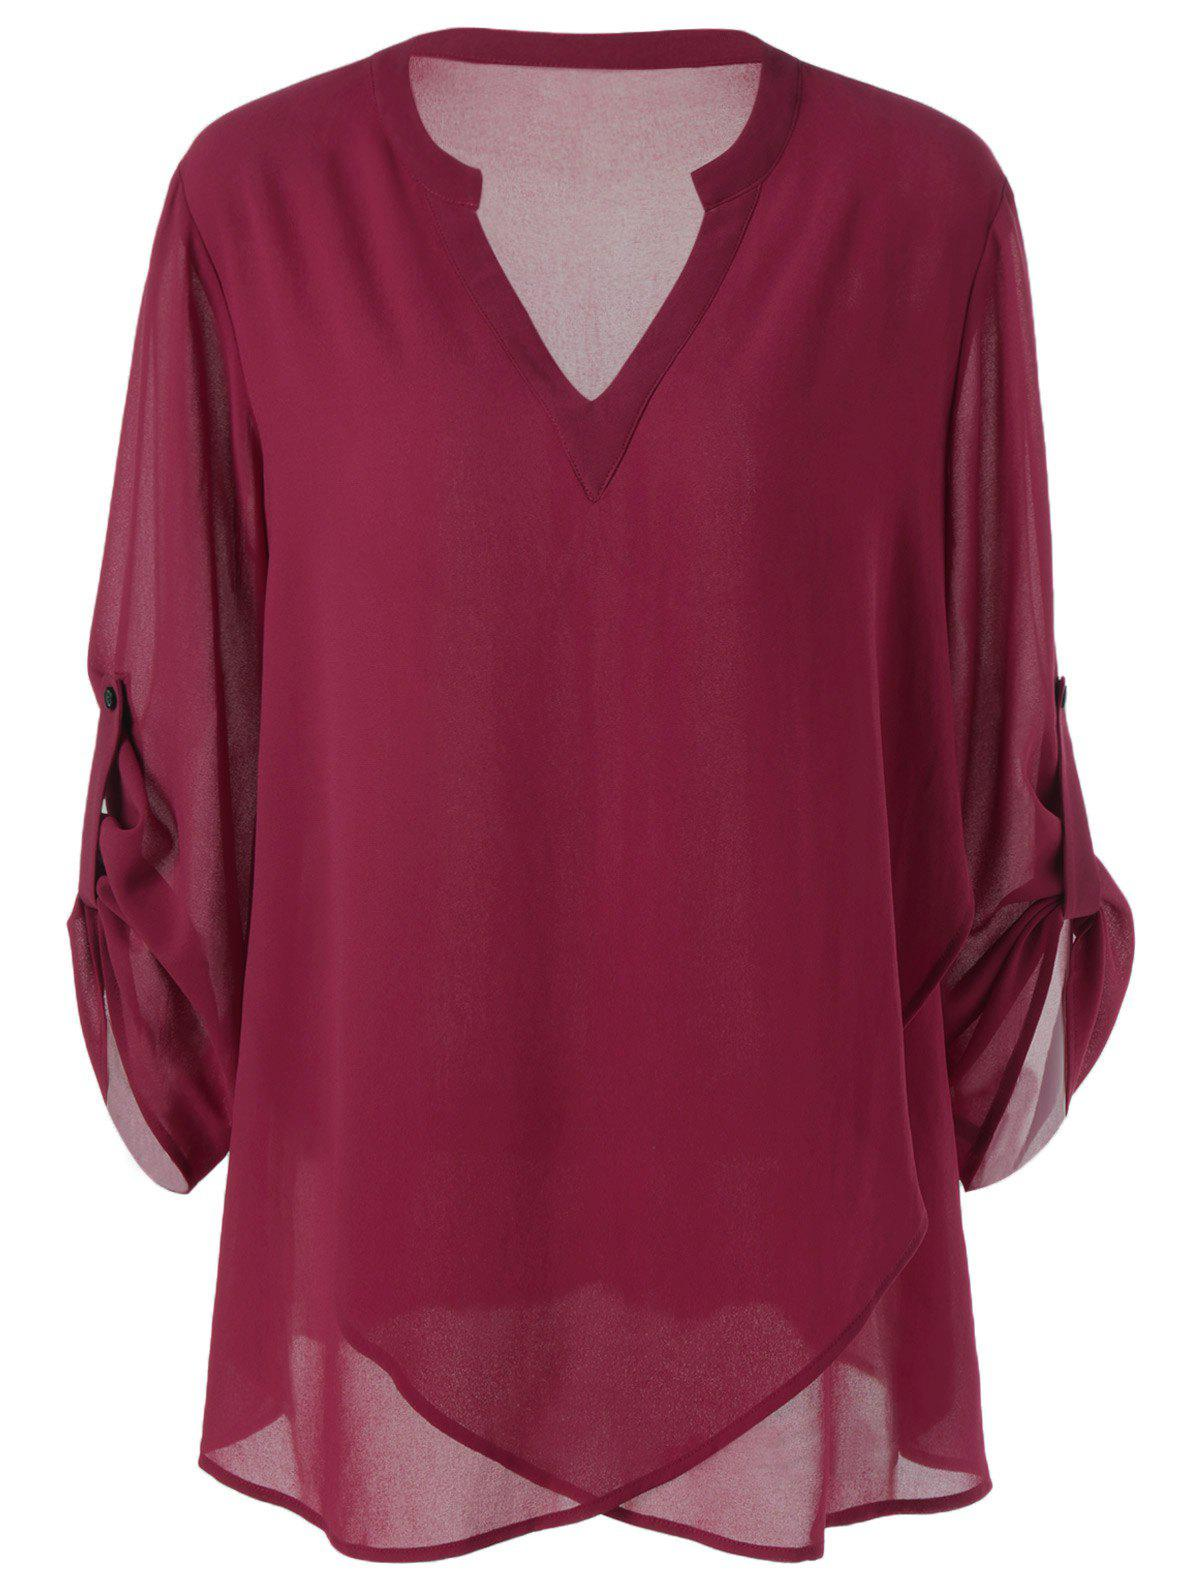 Plus Size Split-Neck Adjustable Sleeve BlouseWOMEN<br><br>Size: XL; Color: WINE RED; Material: Polyester; Shirt Length: Long; Sleeve Length: Full; Collar: V-Neck; Style: Casual; Season: Fall,Spring,Summer; Pattern Type: Solid; Weight: 0.3400kg; Package Contents: 1 x Blouse;